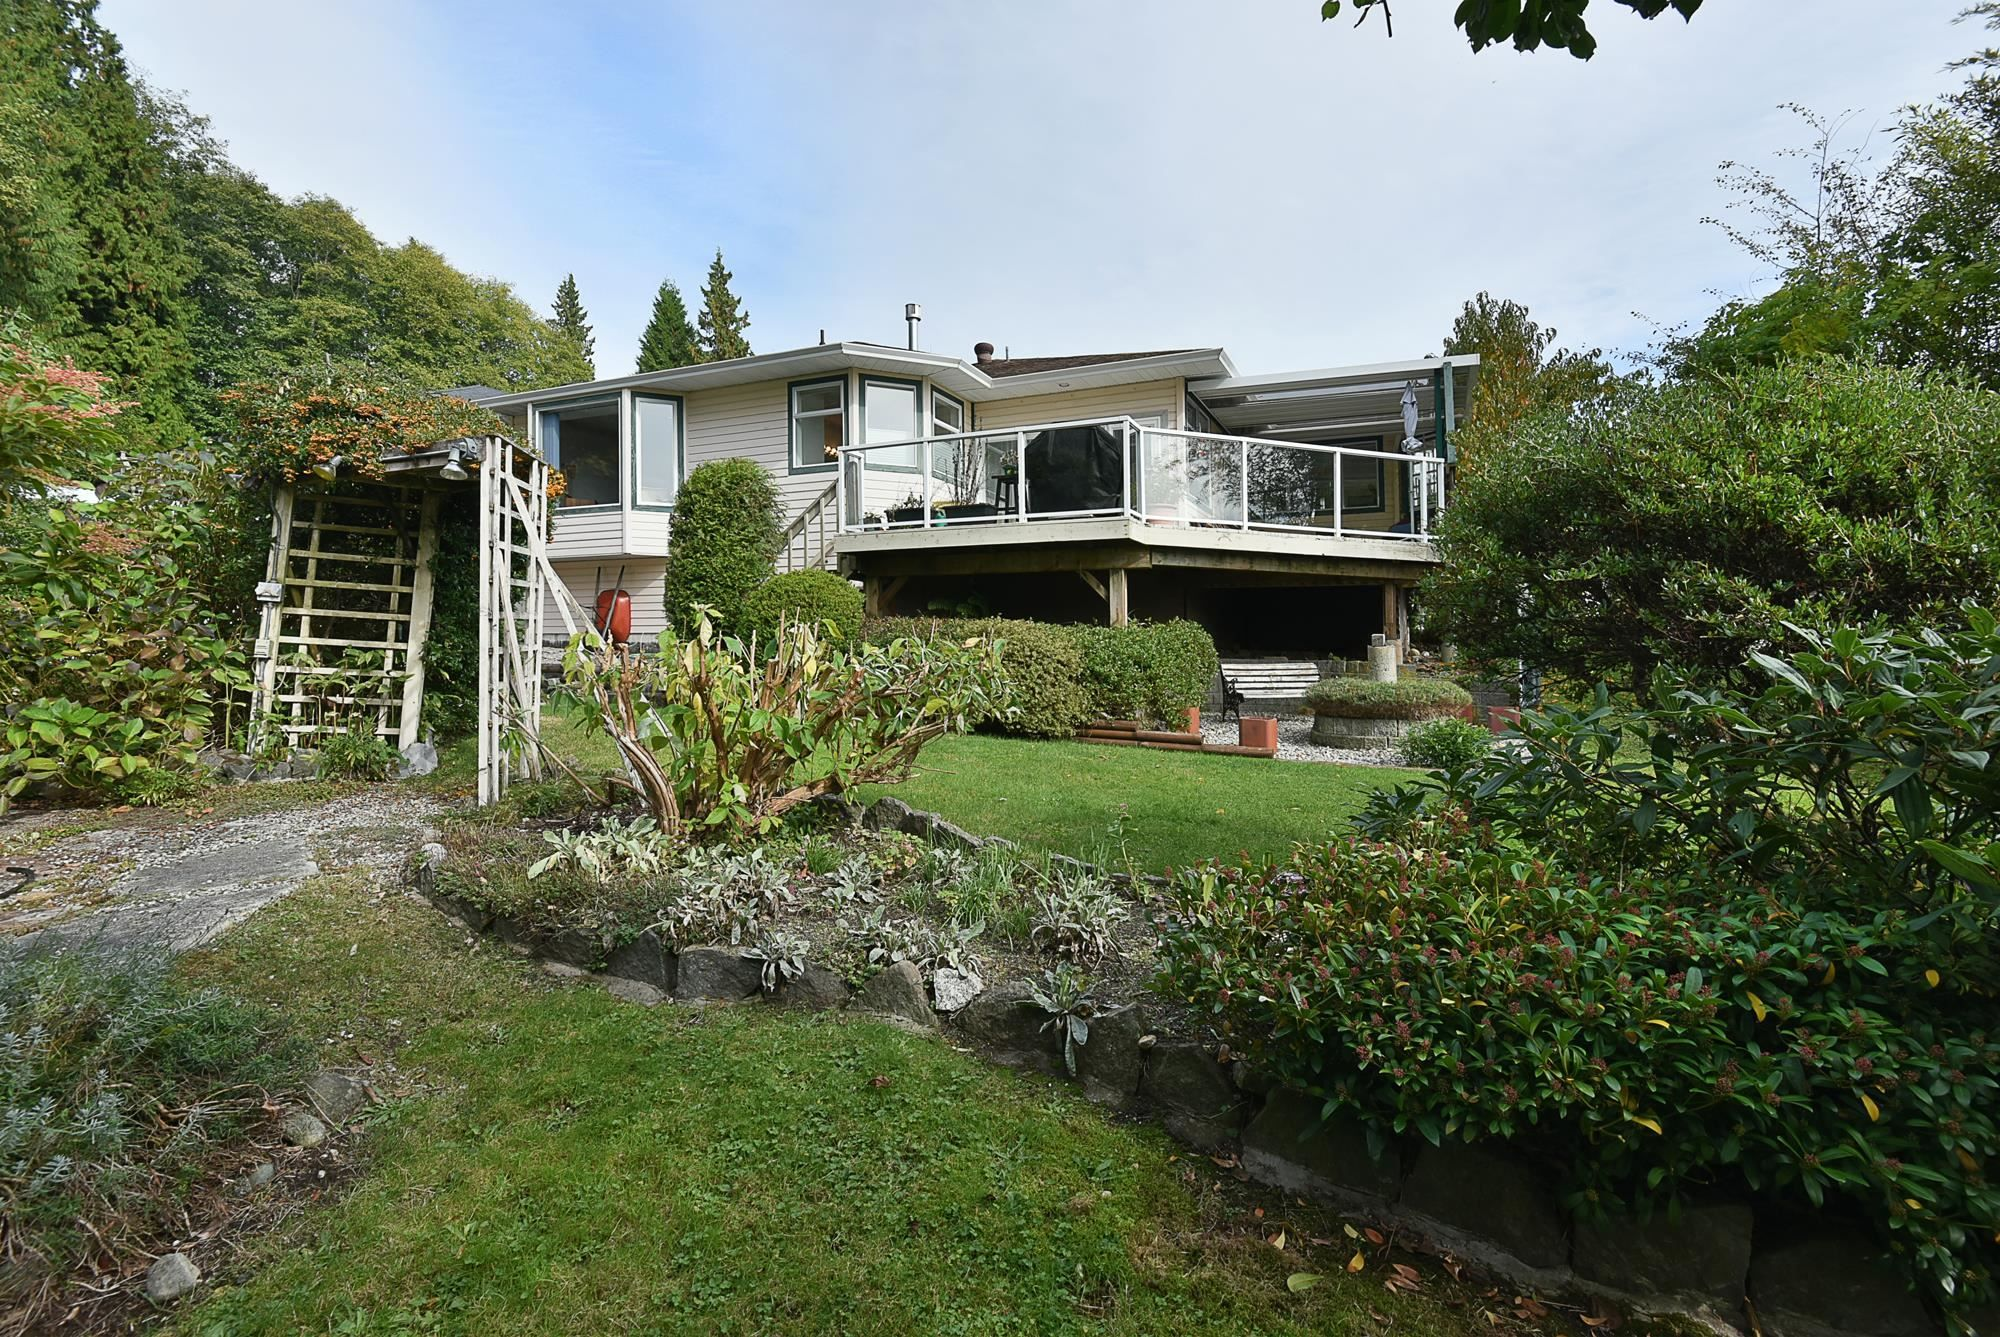 """Main Photo: 491 OCEAN VIEW Drive in Gibsons: Gibsons & Area House for sale in """"Woodcreek Park"""" (Sunshine Coast)  : MLS®# R2624435"""